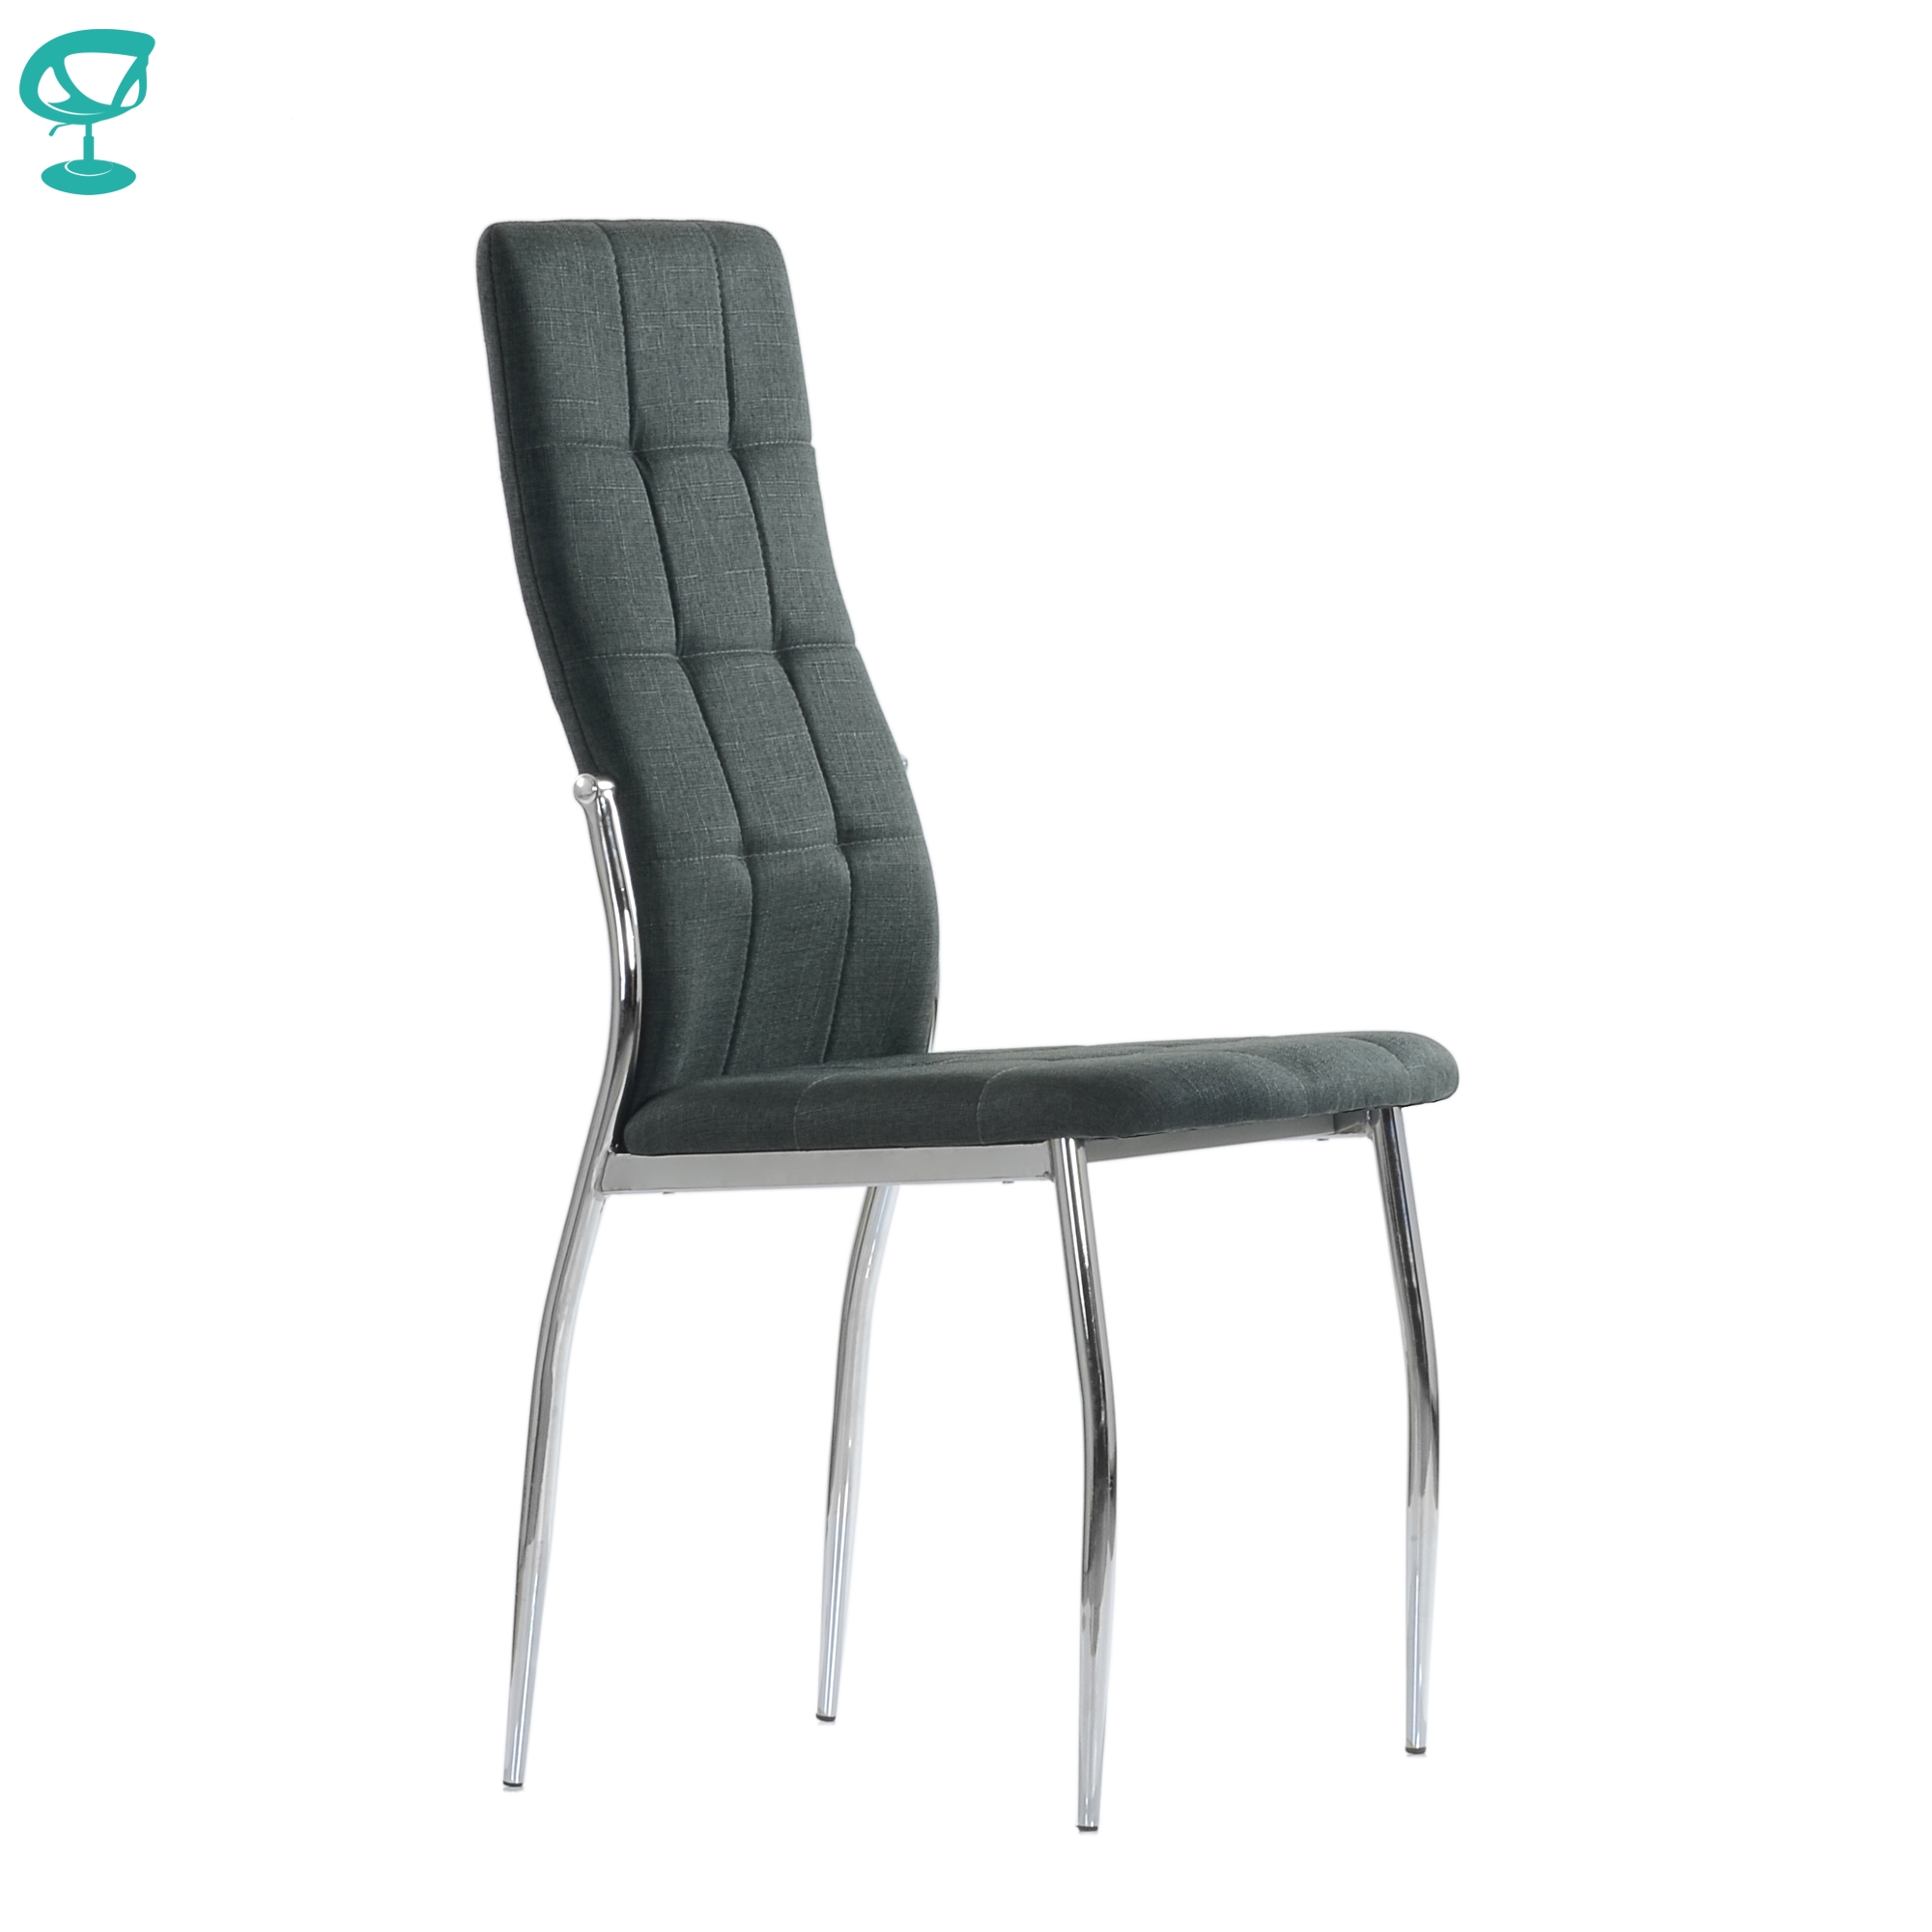 95729 Barneo S-68 Chair Table Soft сидением Dark Gray Fabric Chair Kitchen Chair For Coffee Shop Chair For Restaurant Feet Chrome